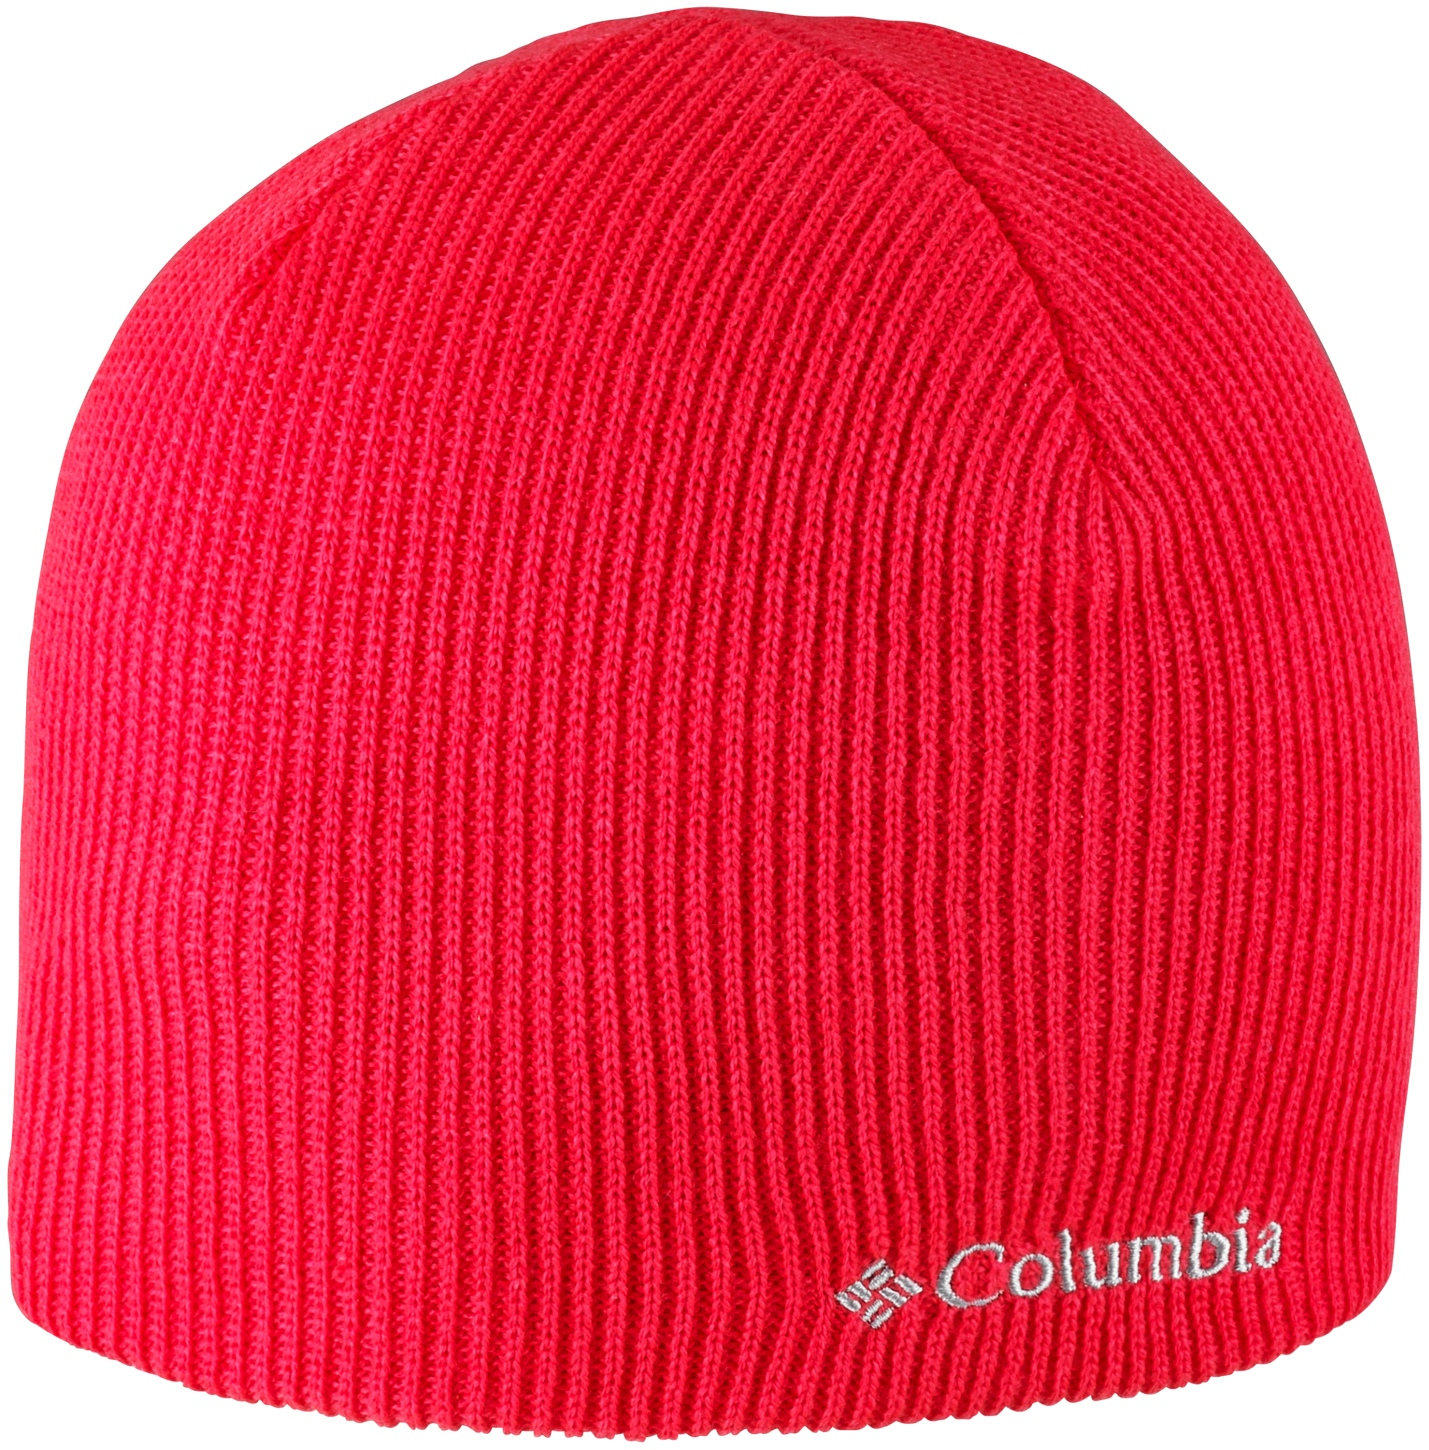 Columbia Whirlibird Watch Cap Beanie Red Camellia-30